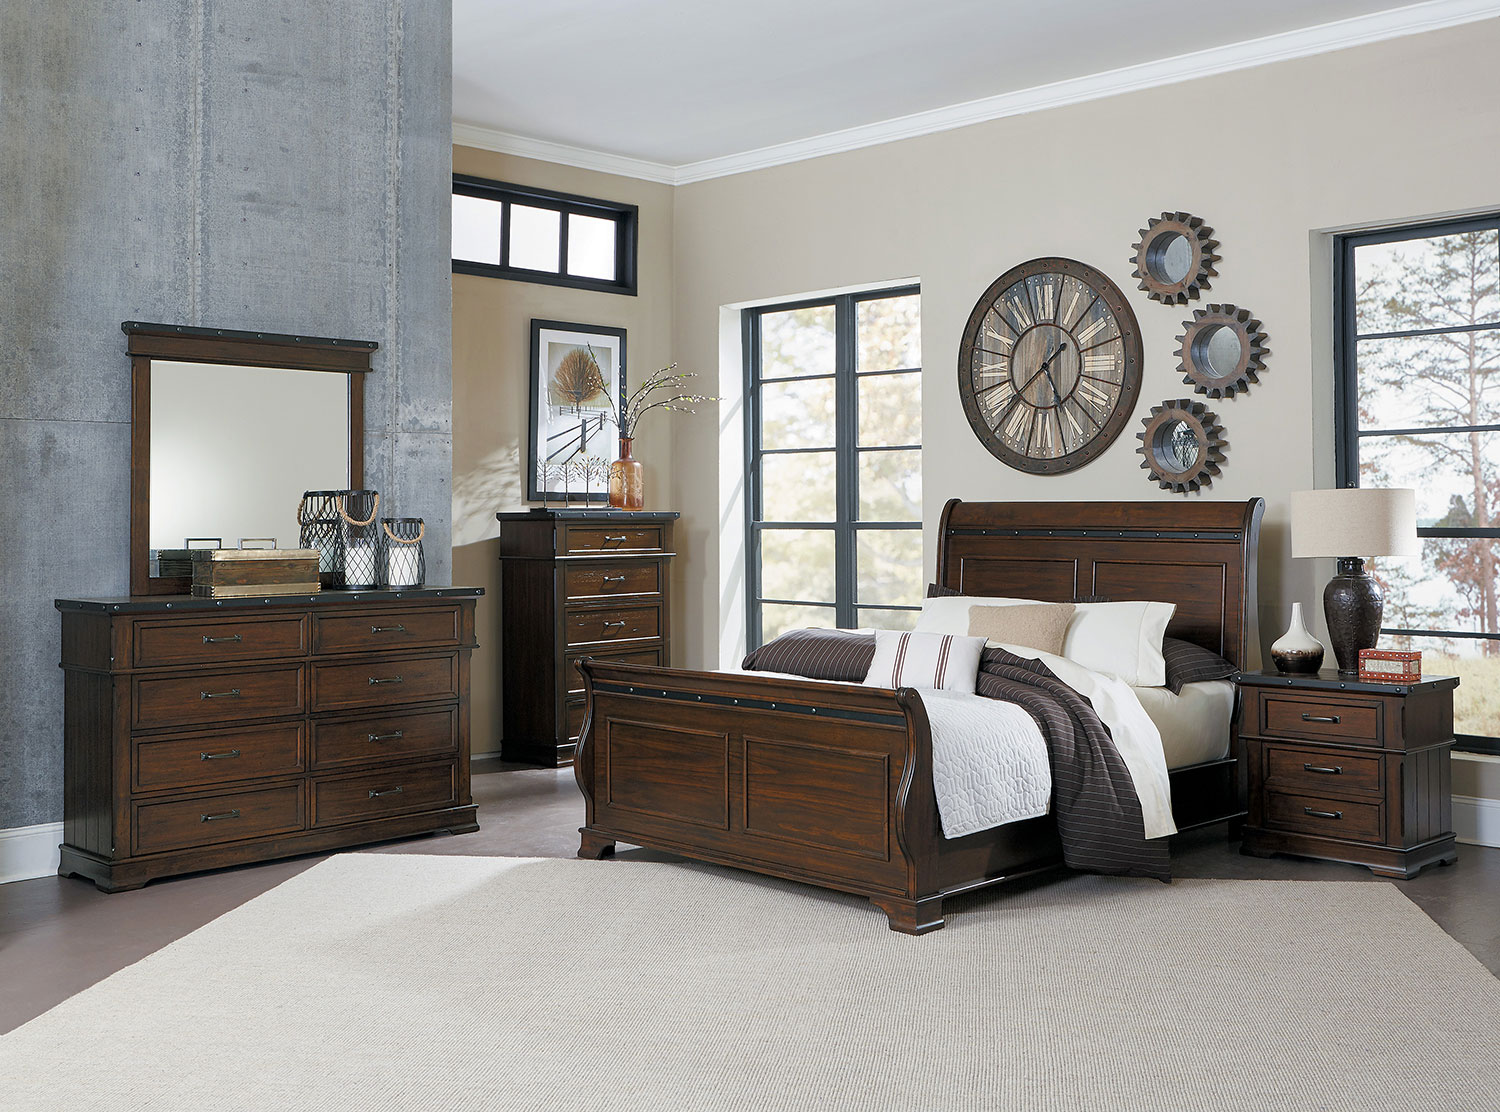 Homelegance Schleiger Sleigh Bedroom Set - Burnished Brown